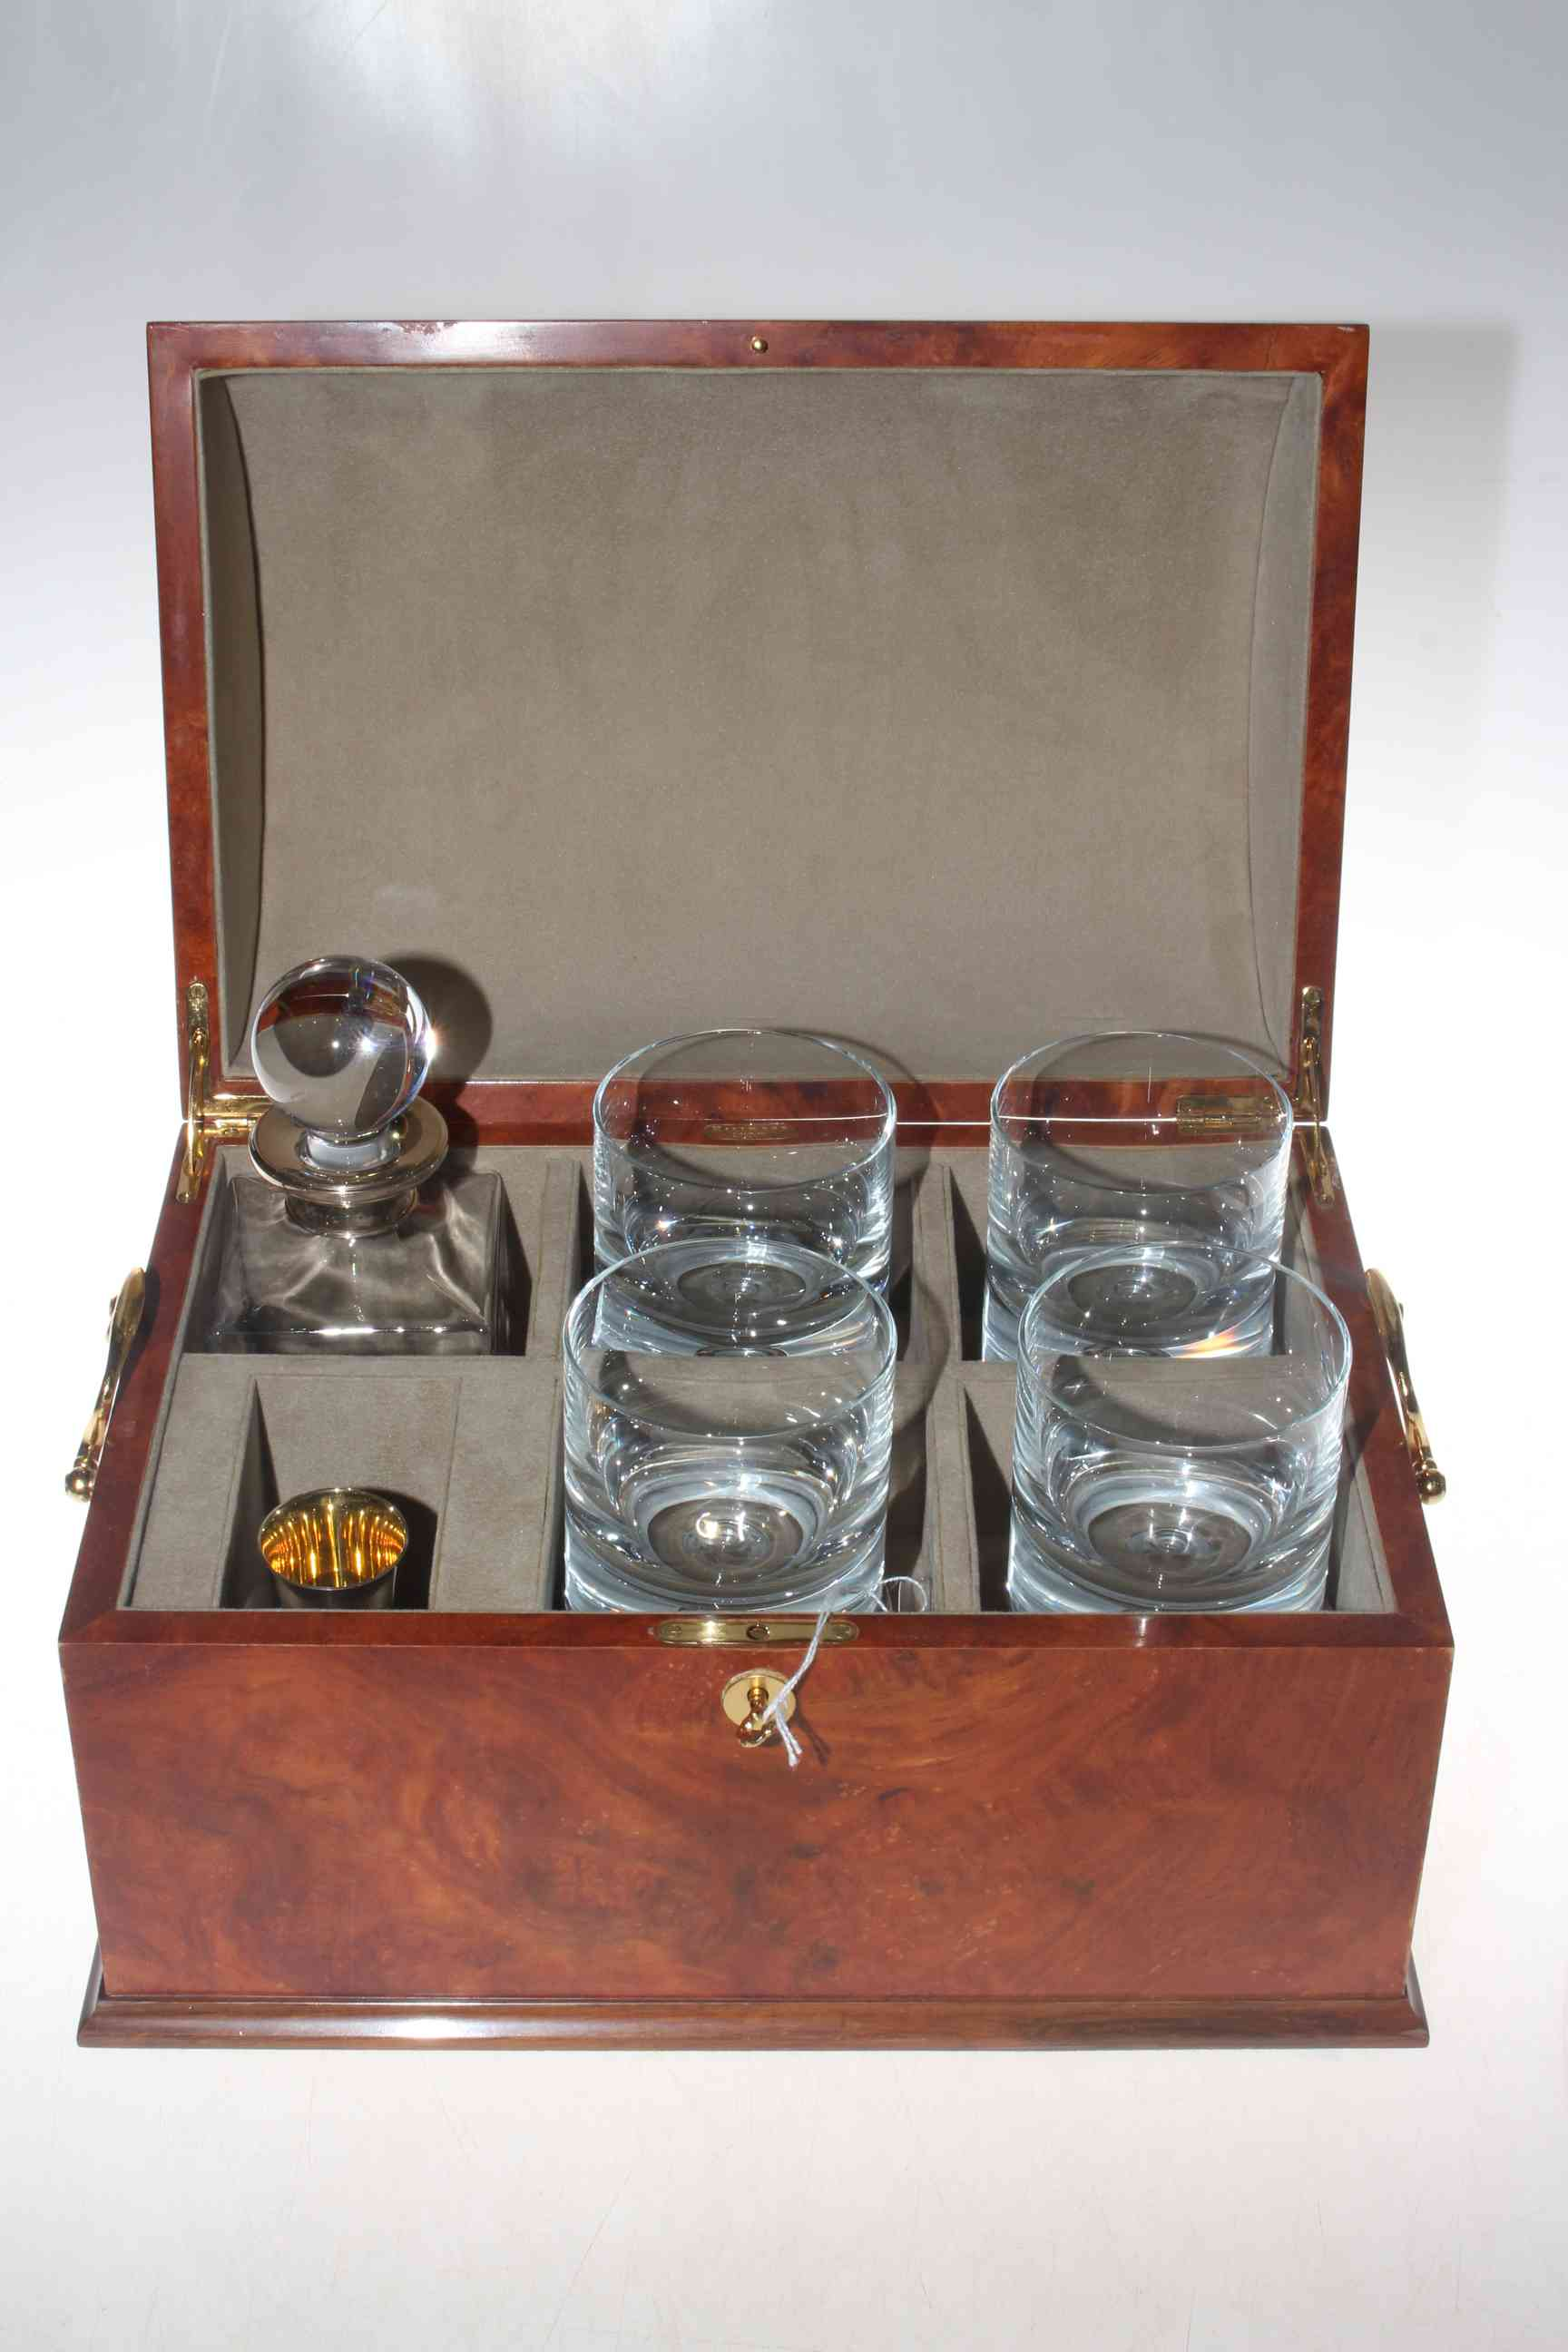 Lot 304 - Silver mounted spirit decanter and tumbler set with solid silver measure and in burr woos